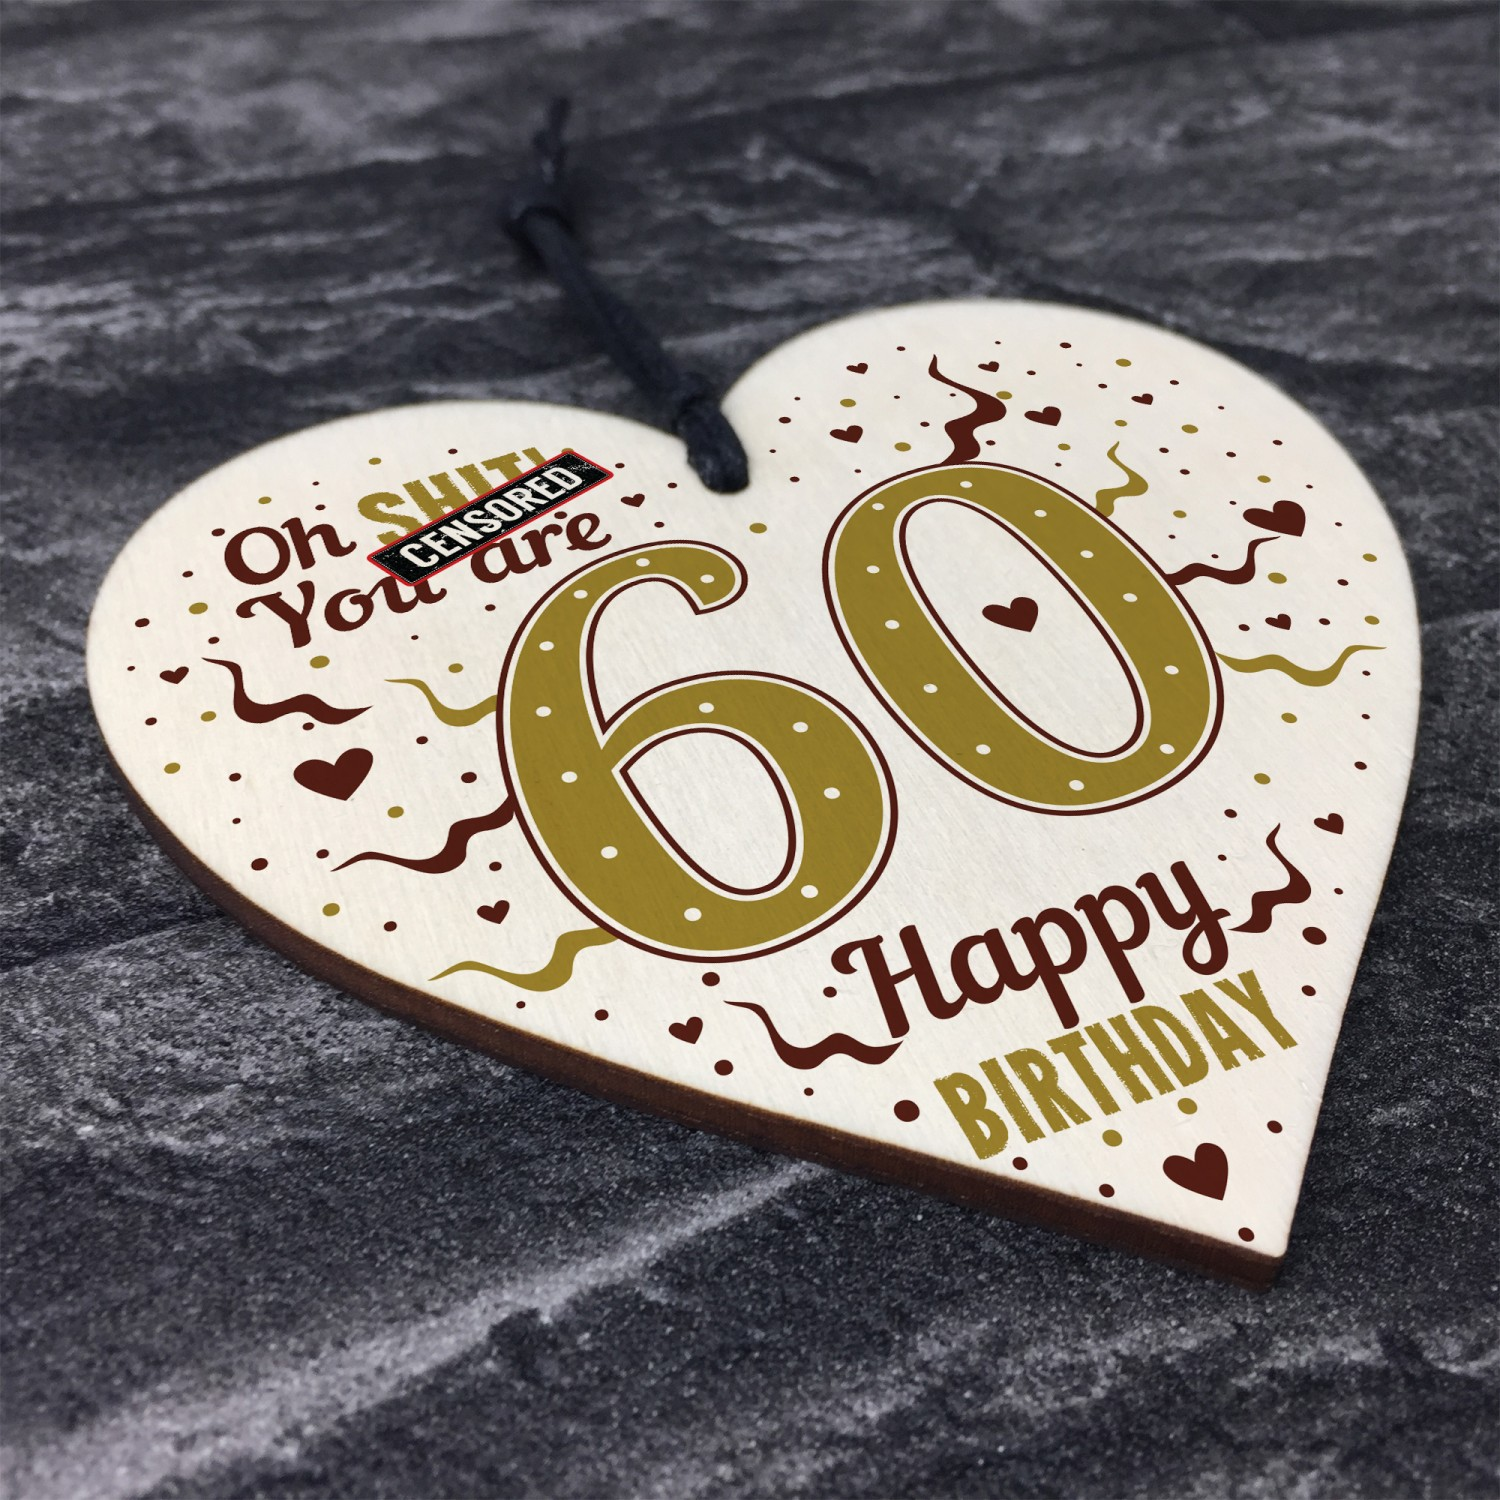 60th Birthday Gifts For Women 60th Birthday Gifts For Men